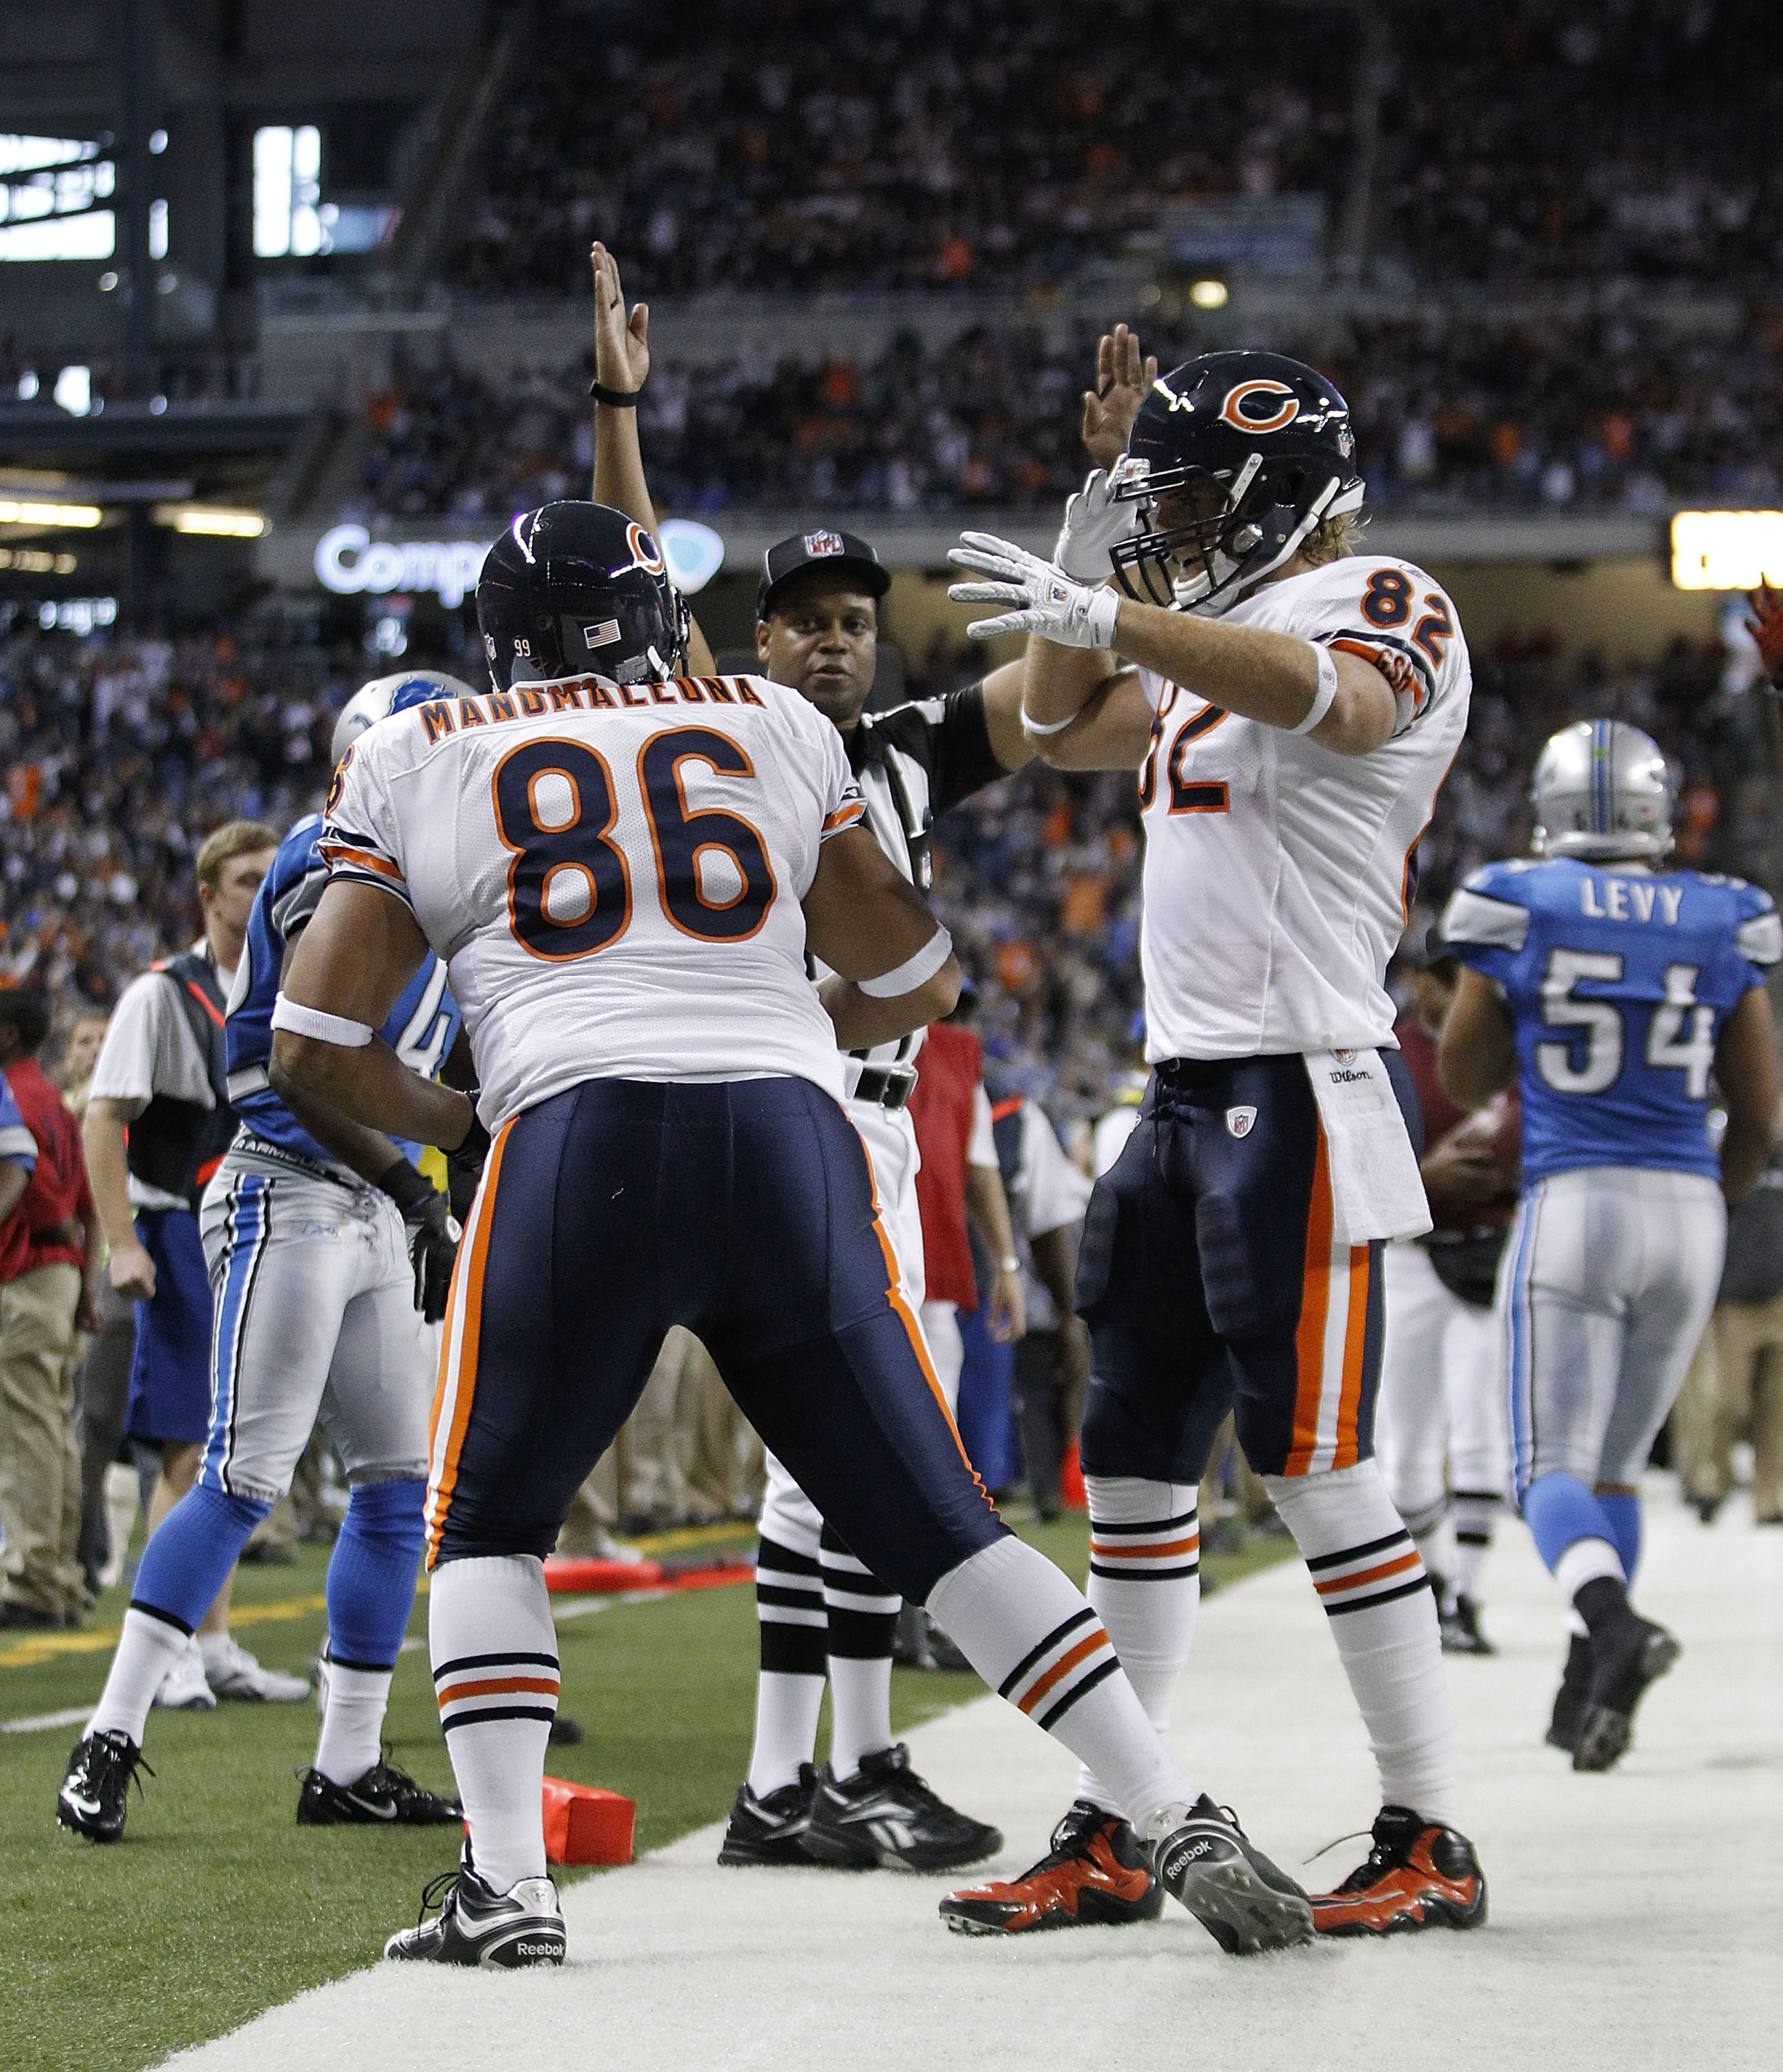 DETROIT - DECEMBER 05:  Brandon Manumaleuna #86 of the Chicago Bears celebrates a fourth quarter touchdown with teammate Greg Olsen #82 during the game against the Detroit Lions at Ford Field on December 5, 2010 in Detroit, Michigan. The Bears defeated th